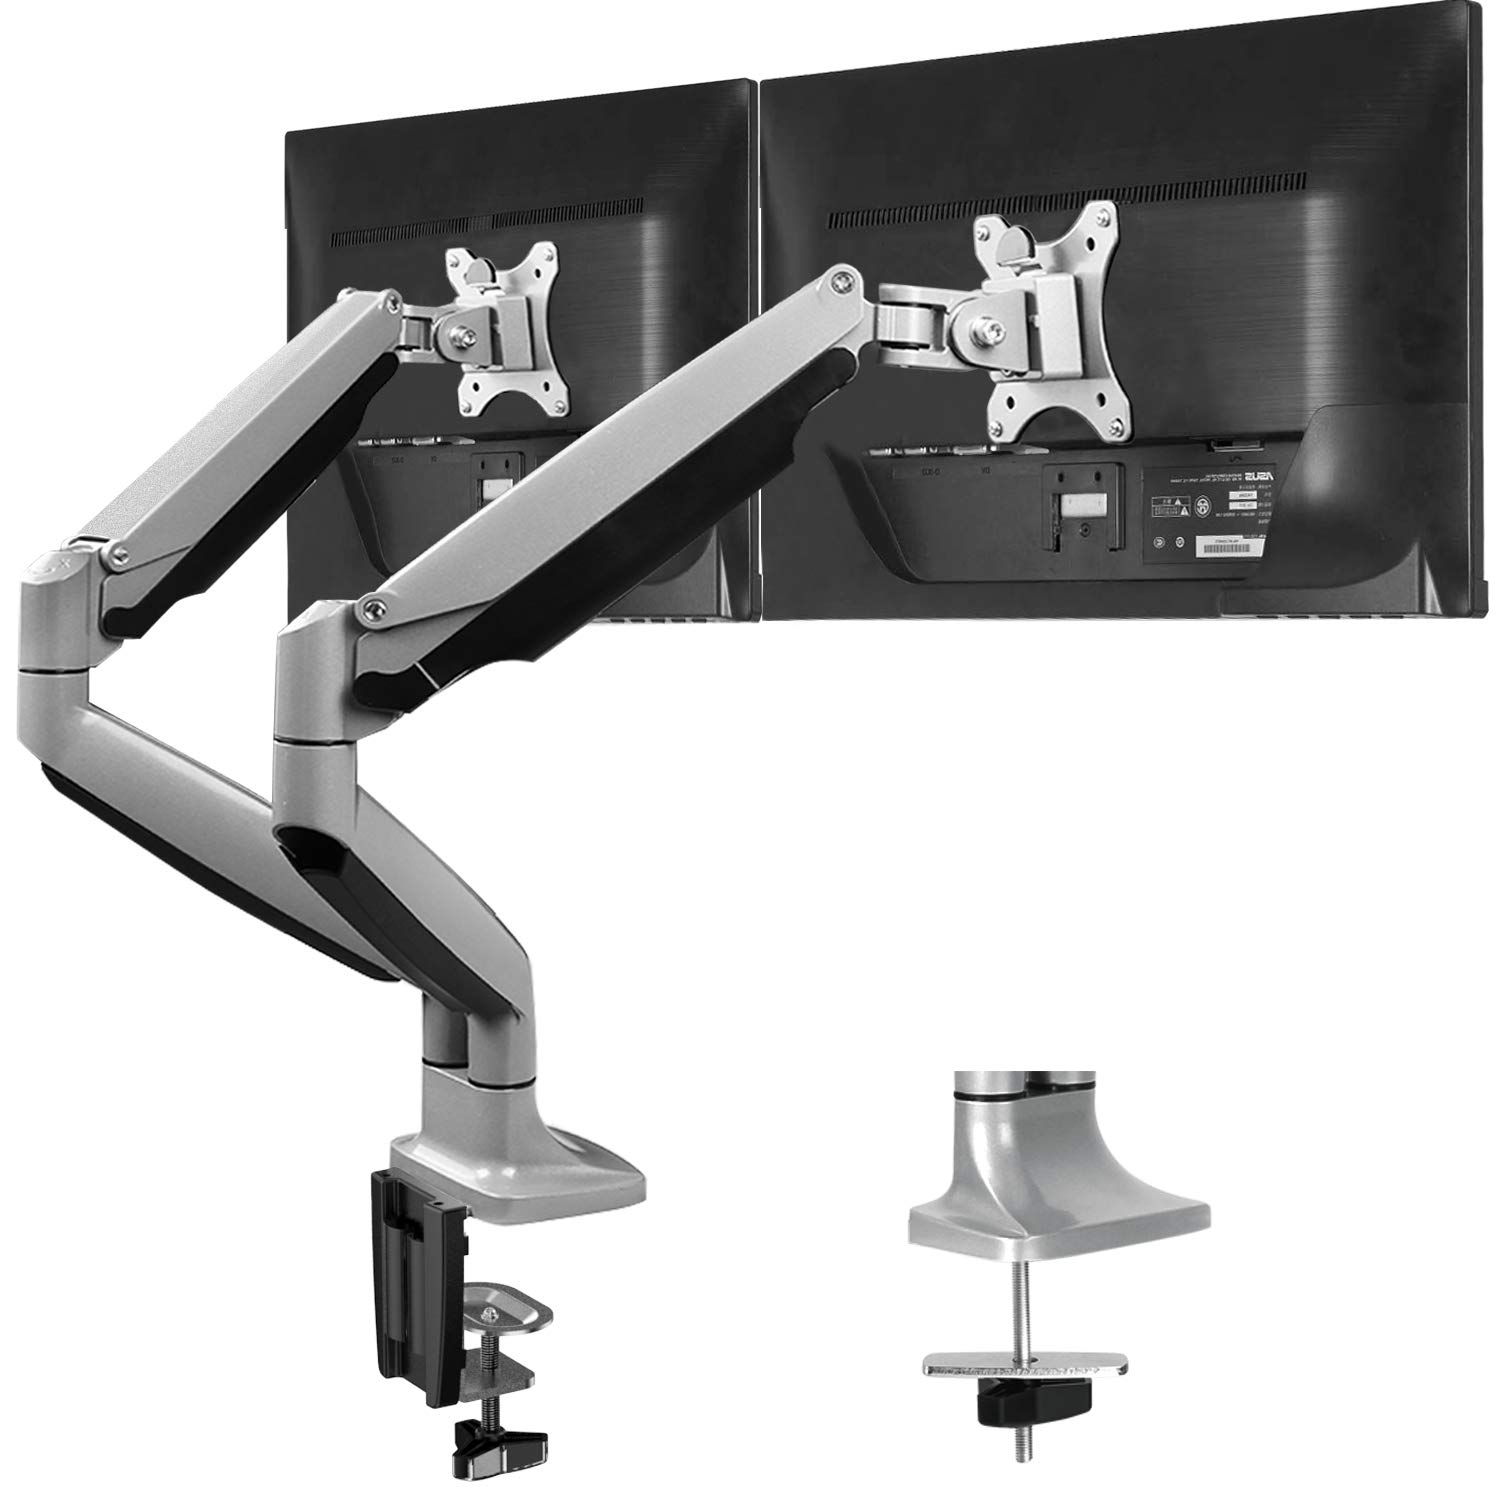 HUANUO Dual Monitor Mount Stand - Aluminum Gas Spring Monitor Arm Desk Mount Full Motion Adjustable VESA Bracket for 2 13 to 32 Inch Computer Screen with Clamp, Grommet Base by HUANUO